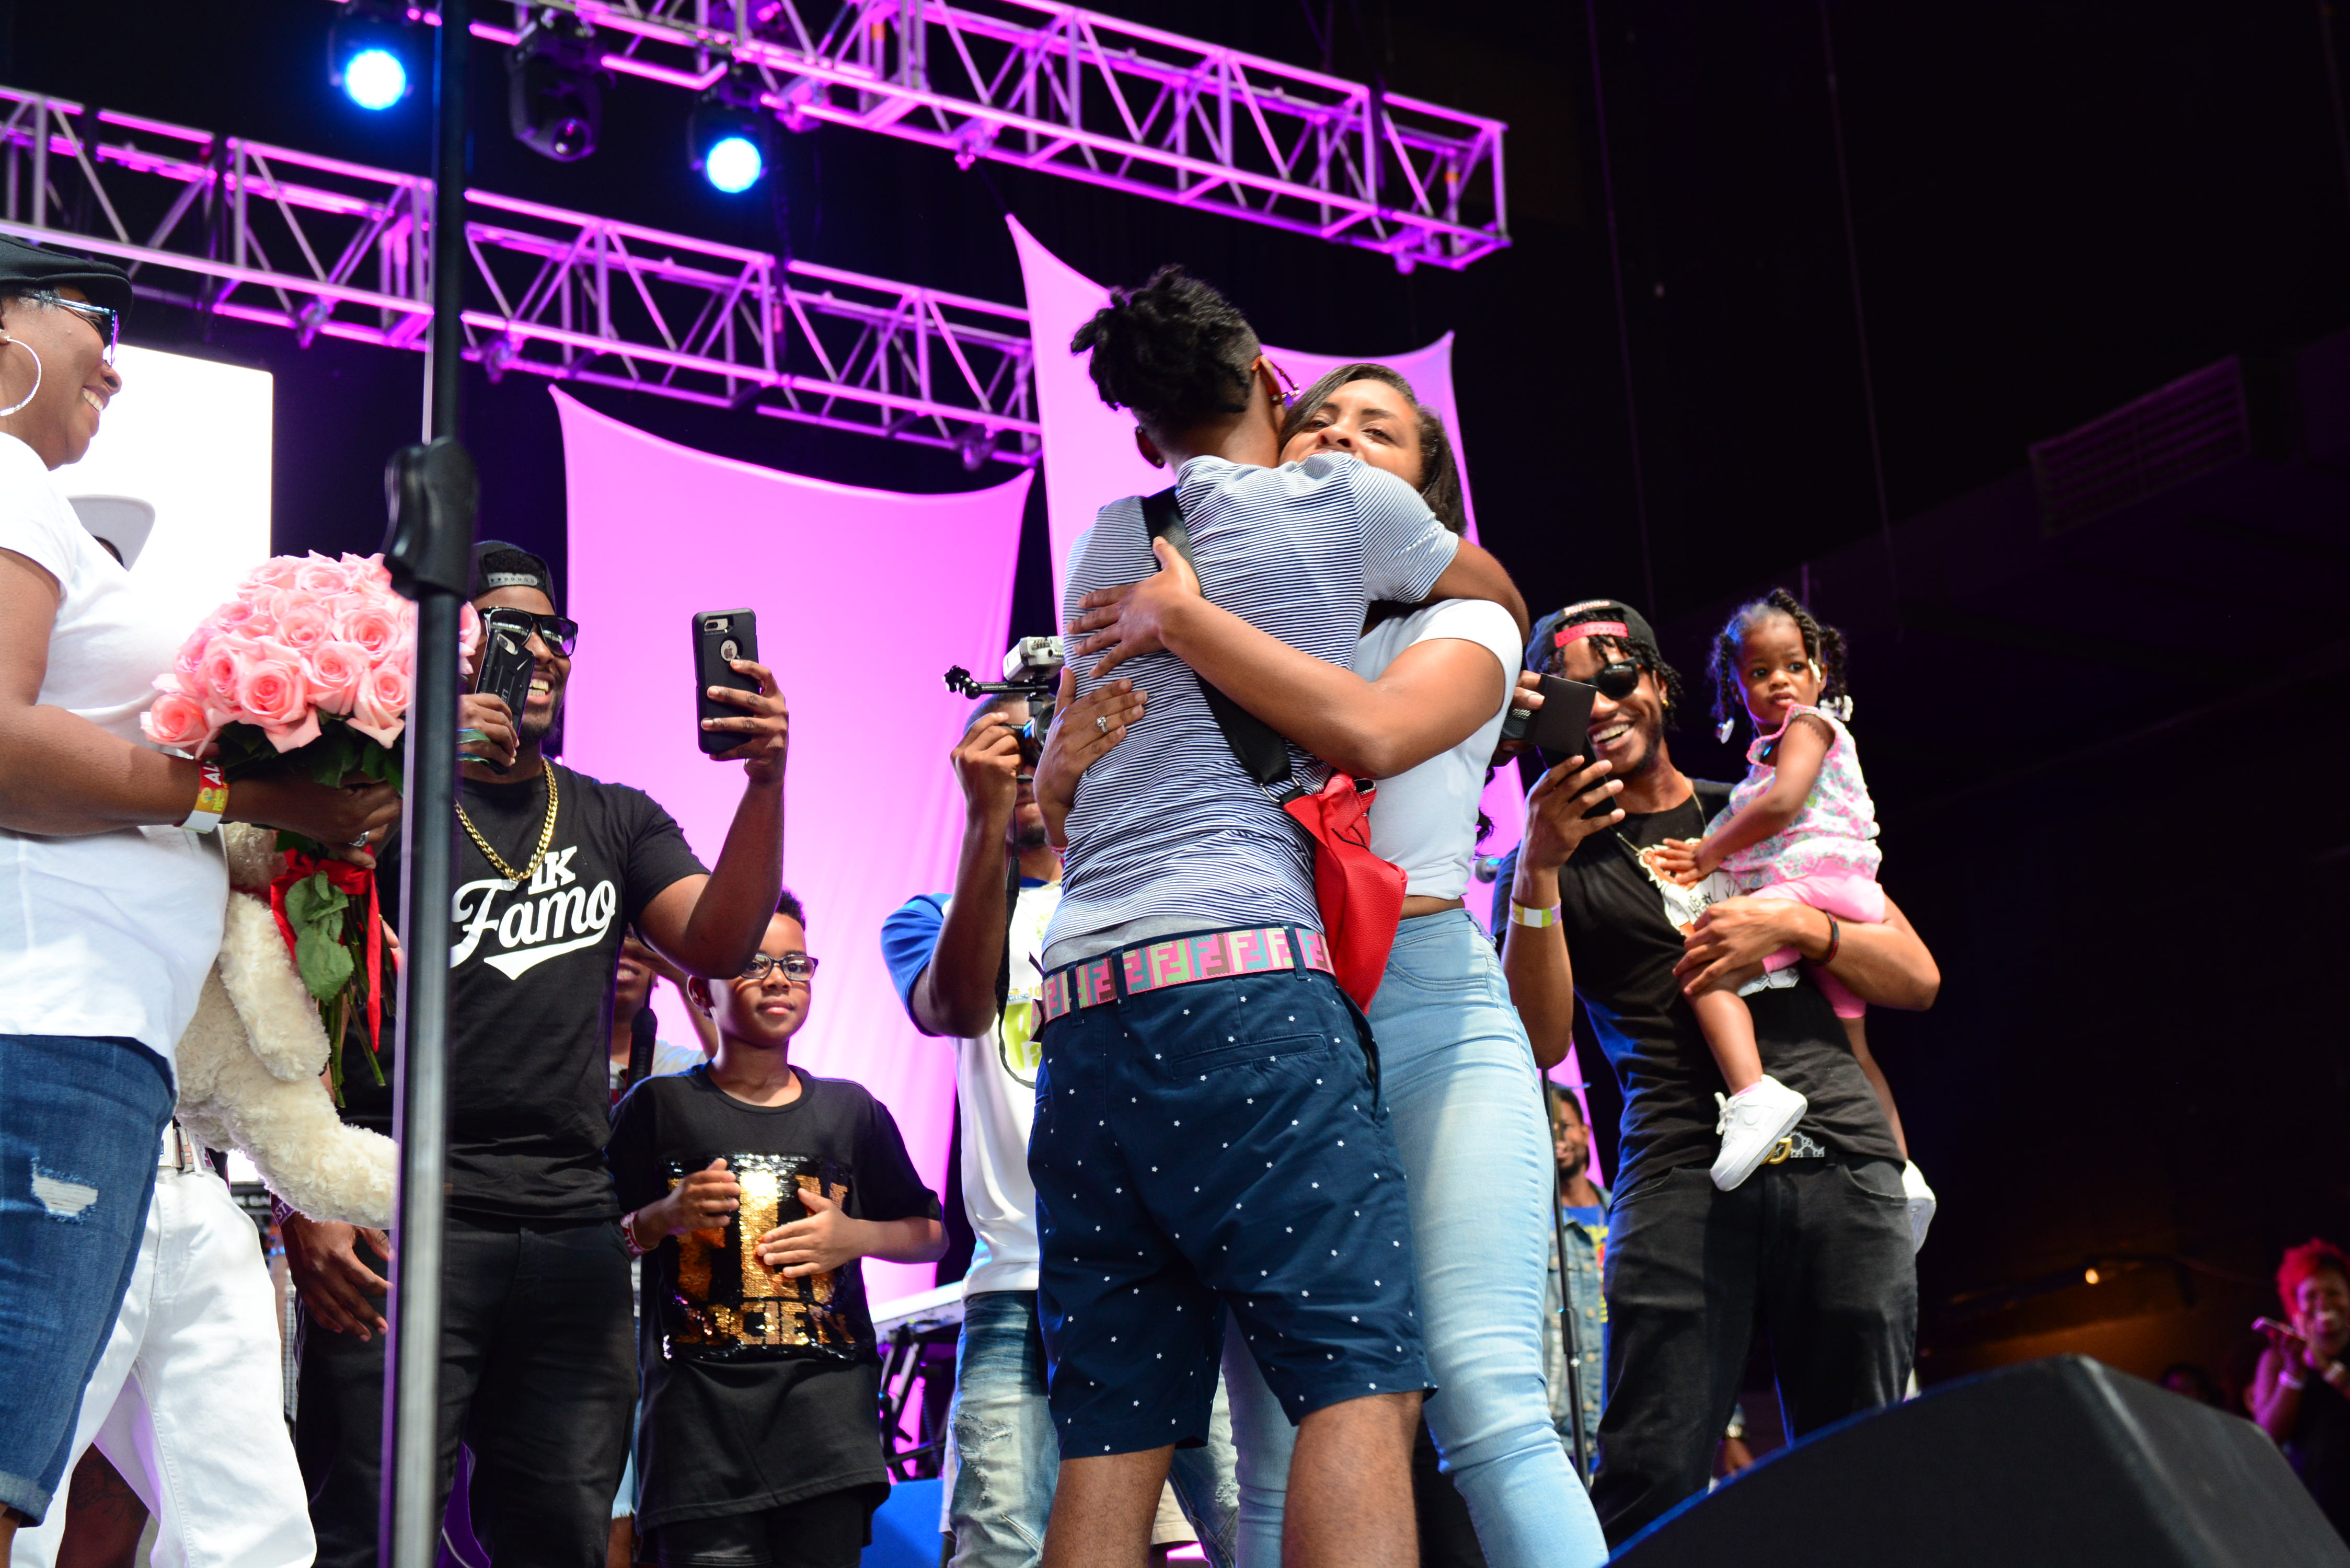 1K Phew Proposes To His Girlfriend On Stage At Praise In The Park 2018 #PITP18